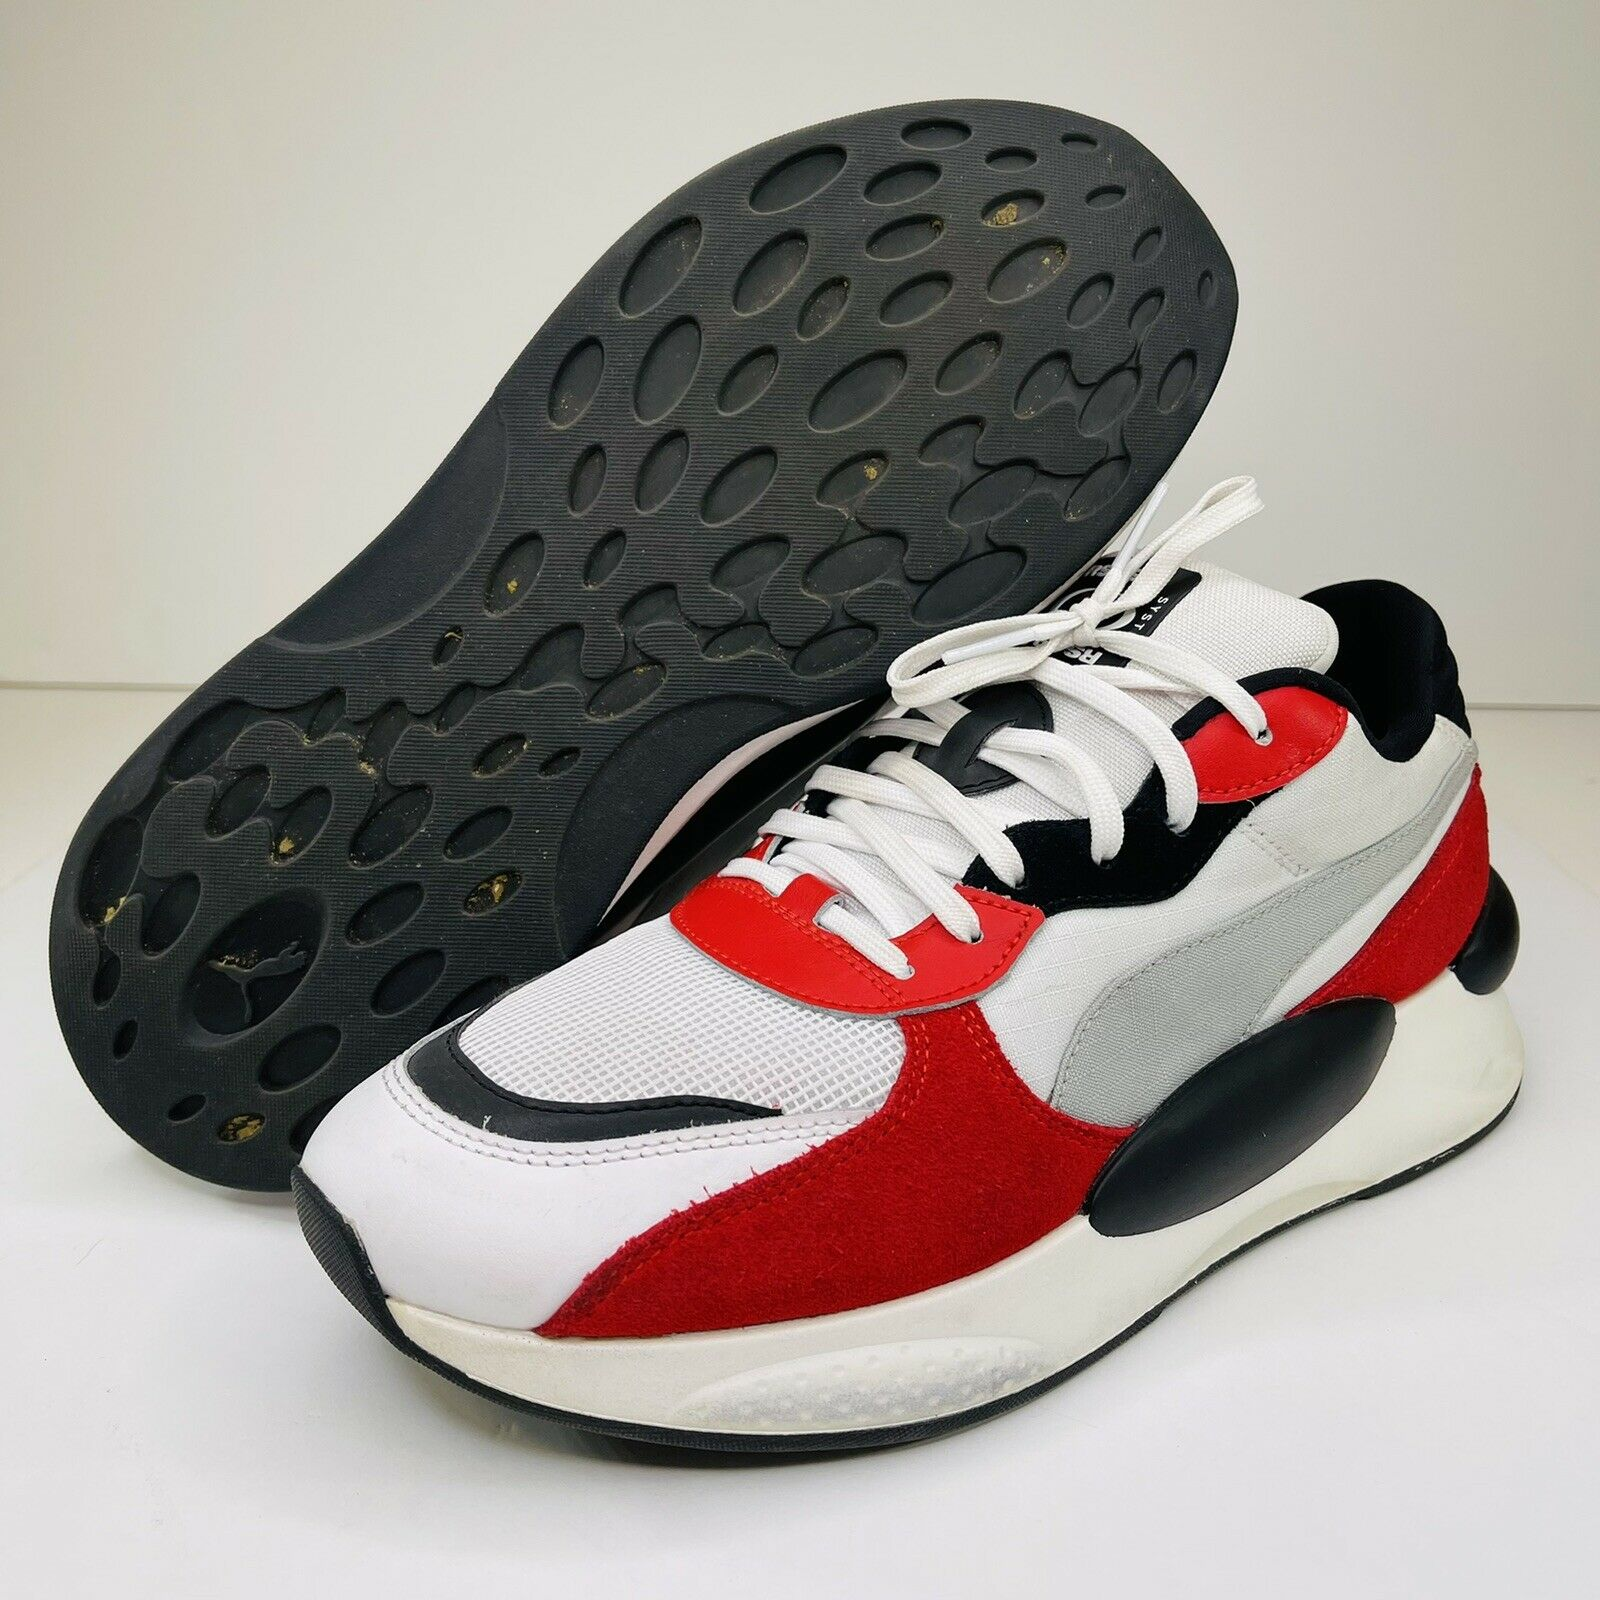 Puma Rs 9.8 Running System Mens Sneakers Shoes Casual White Red Black Size 9.5